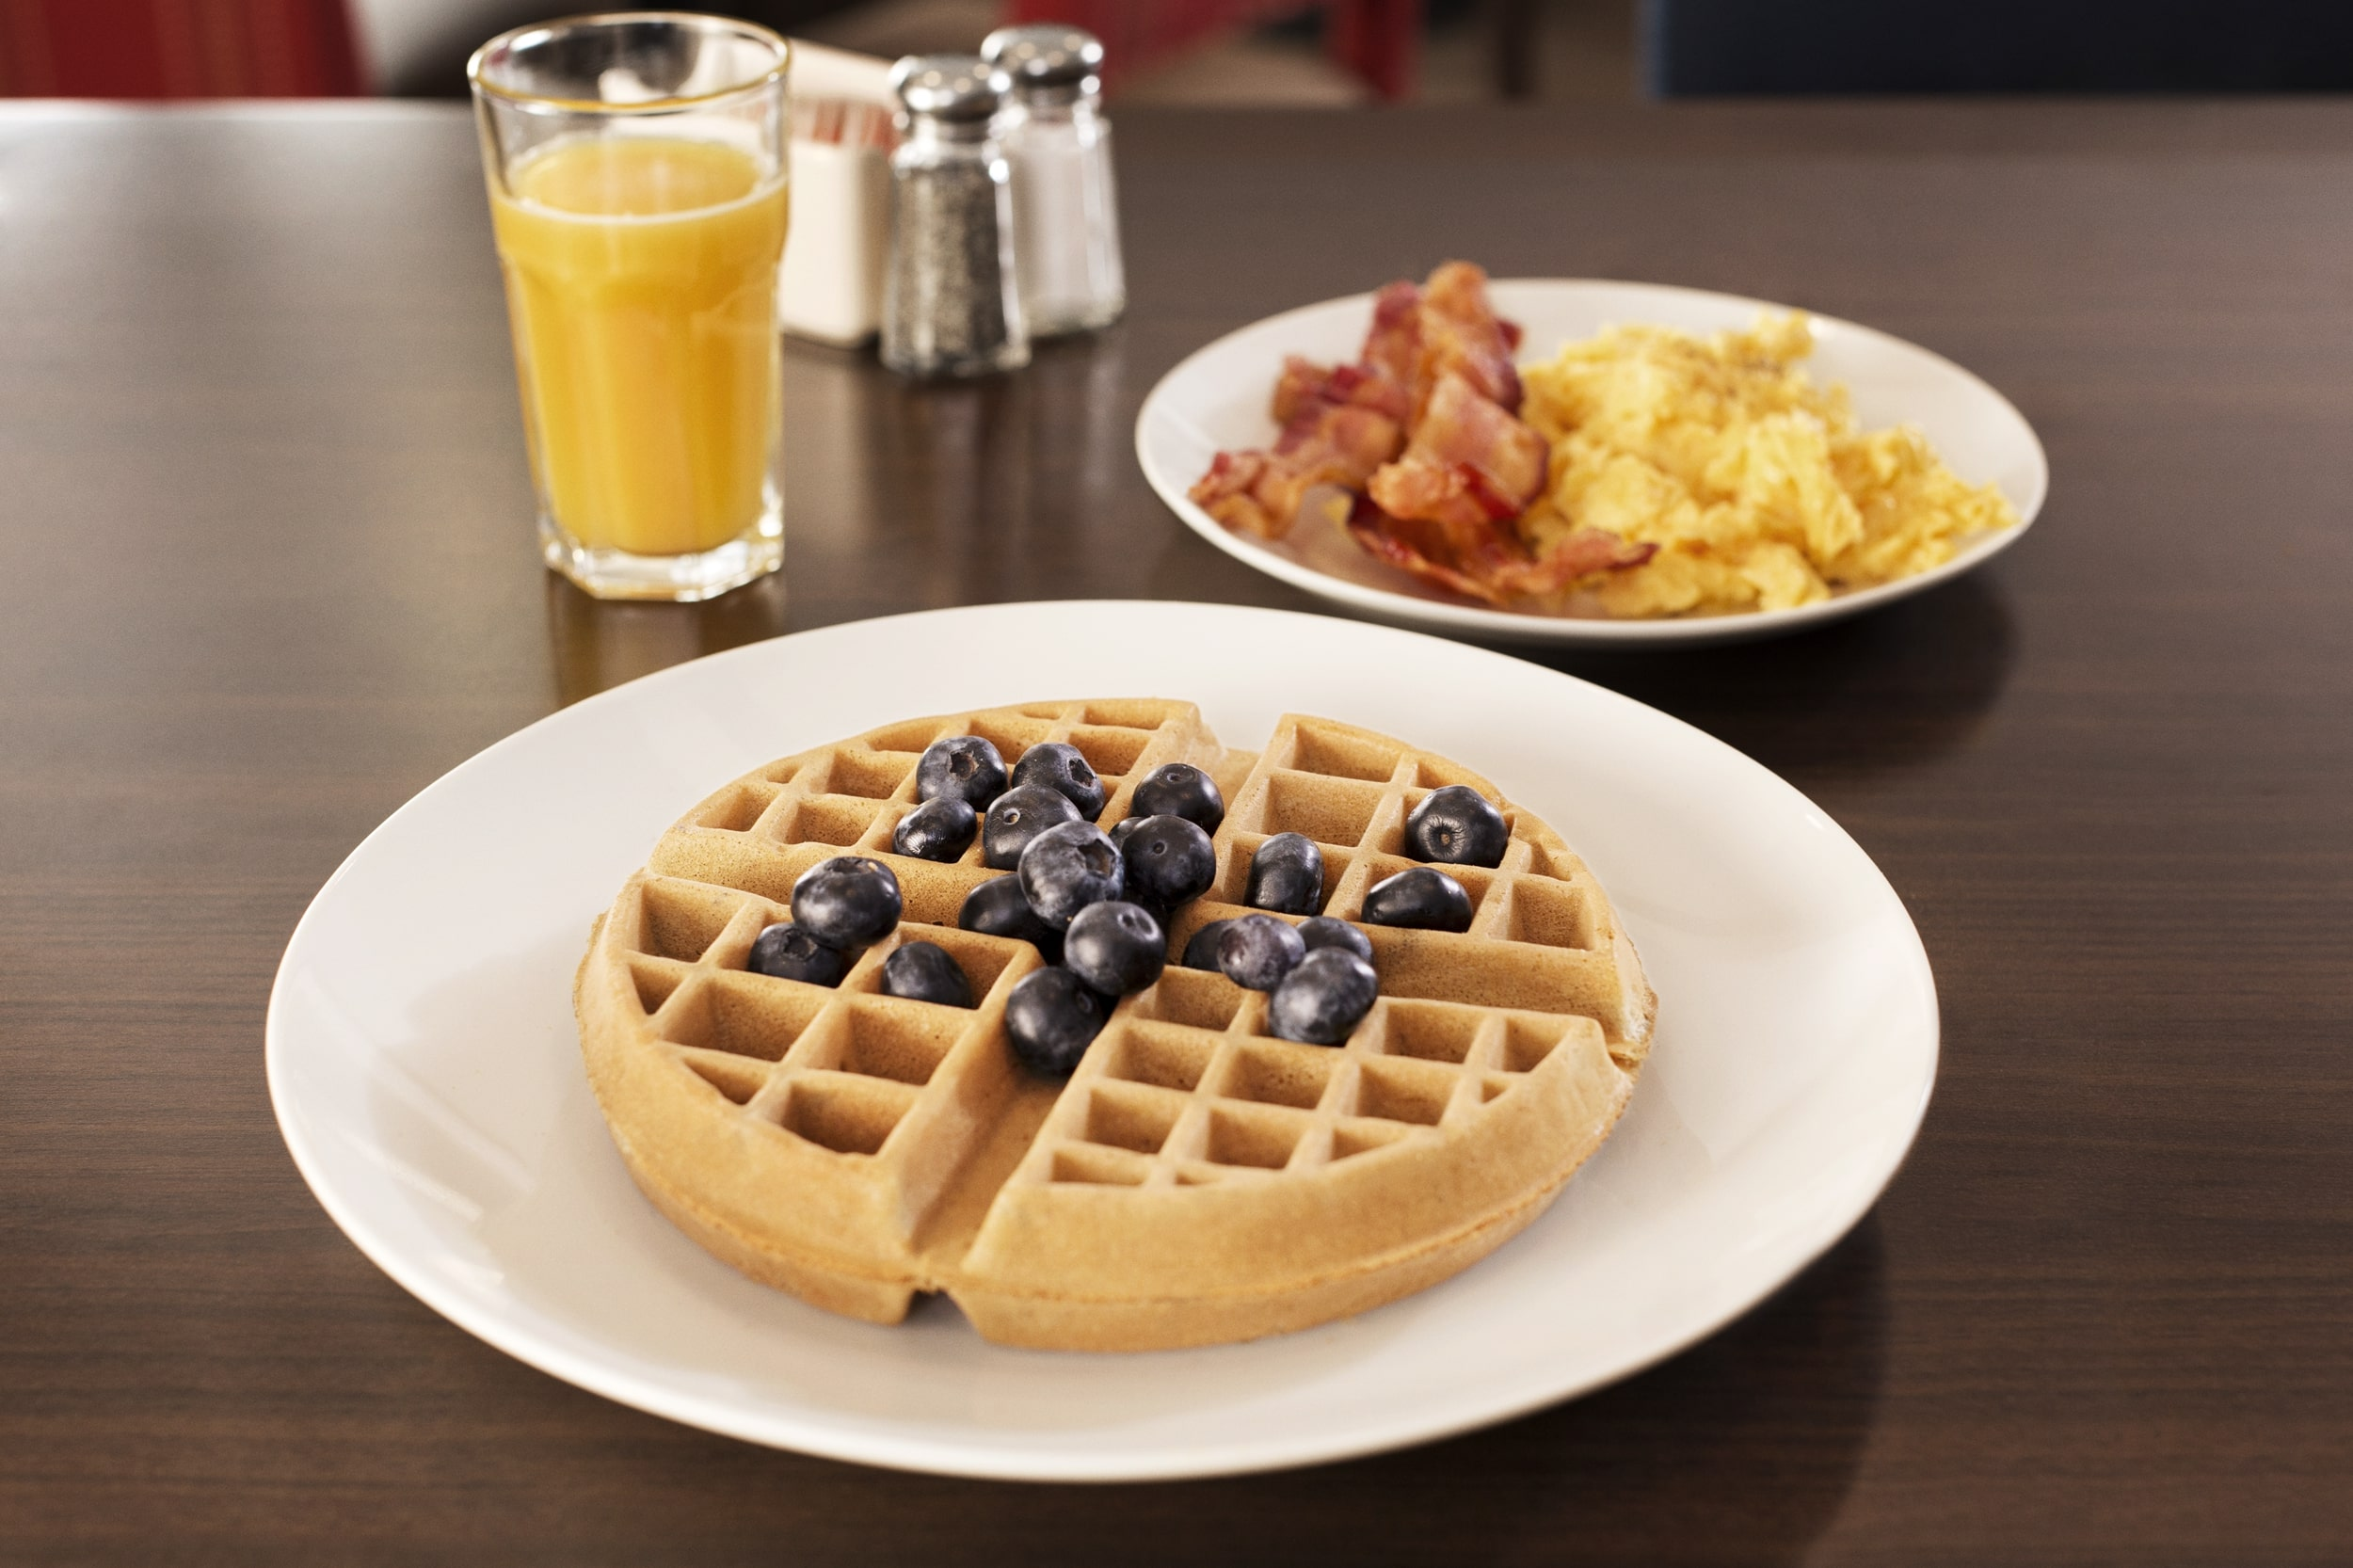 A plate of waffles next to a plate of eggs and bacon with glass of orange juice.